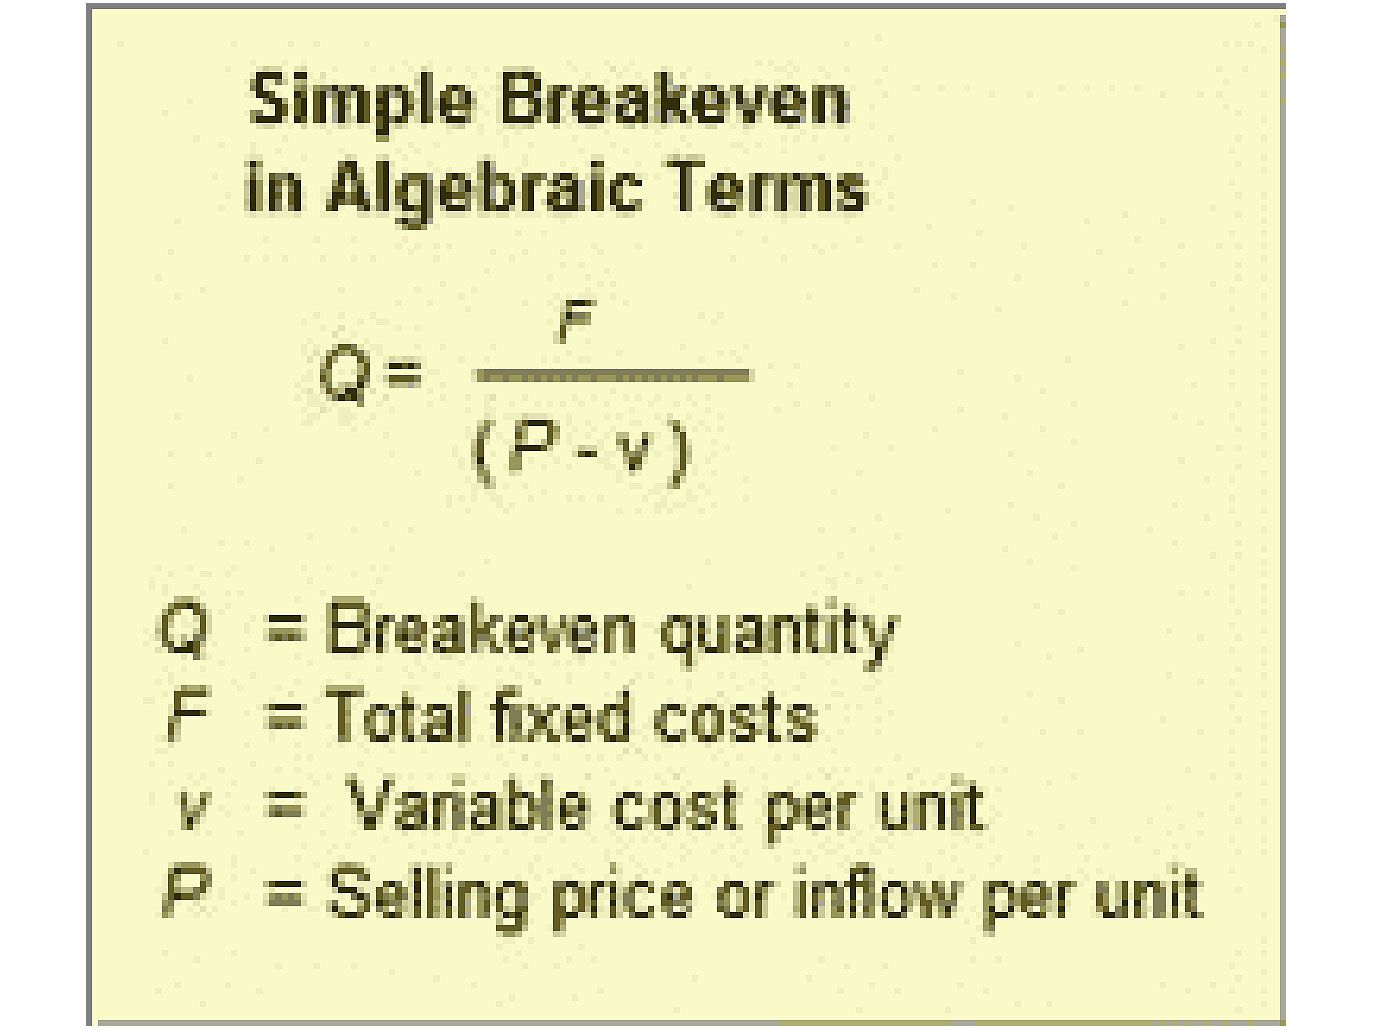 Find Break Even Point, Volume in 5 Steps From Costs and Revenues